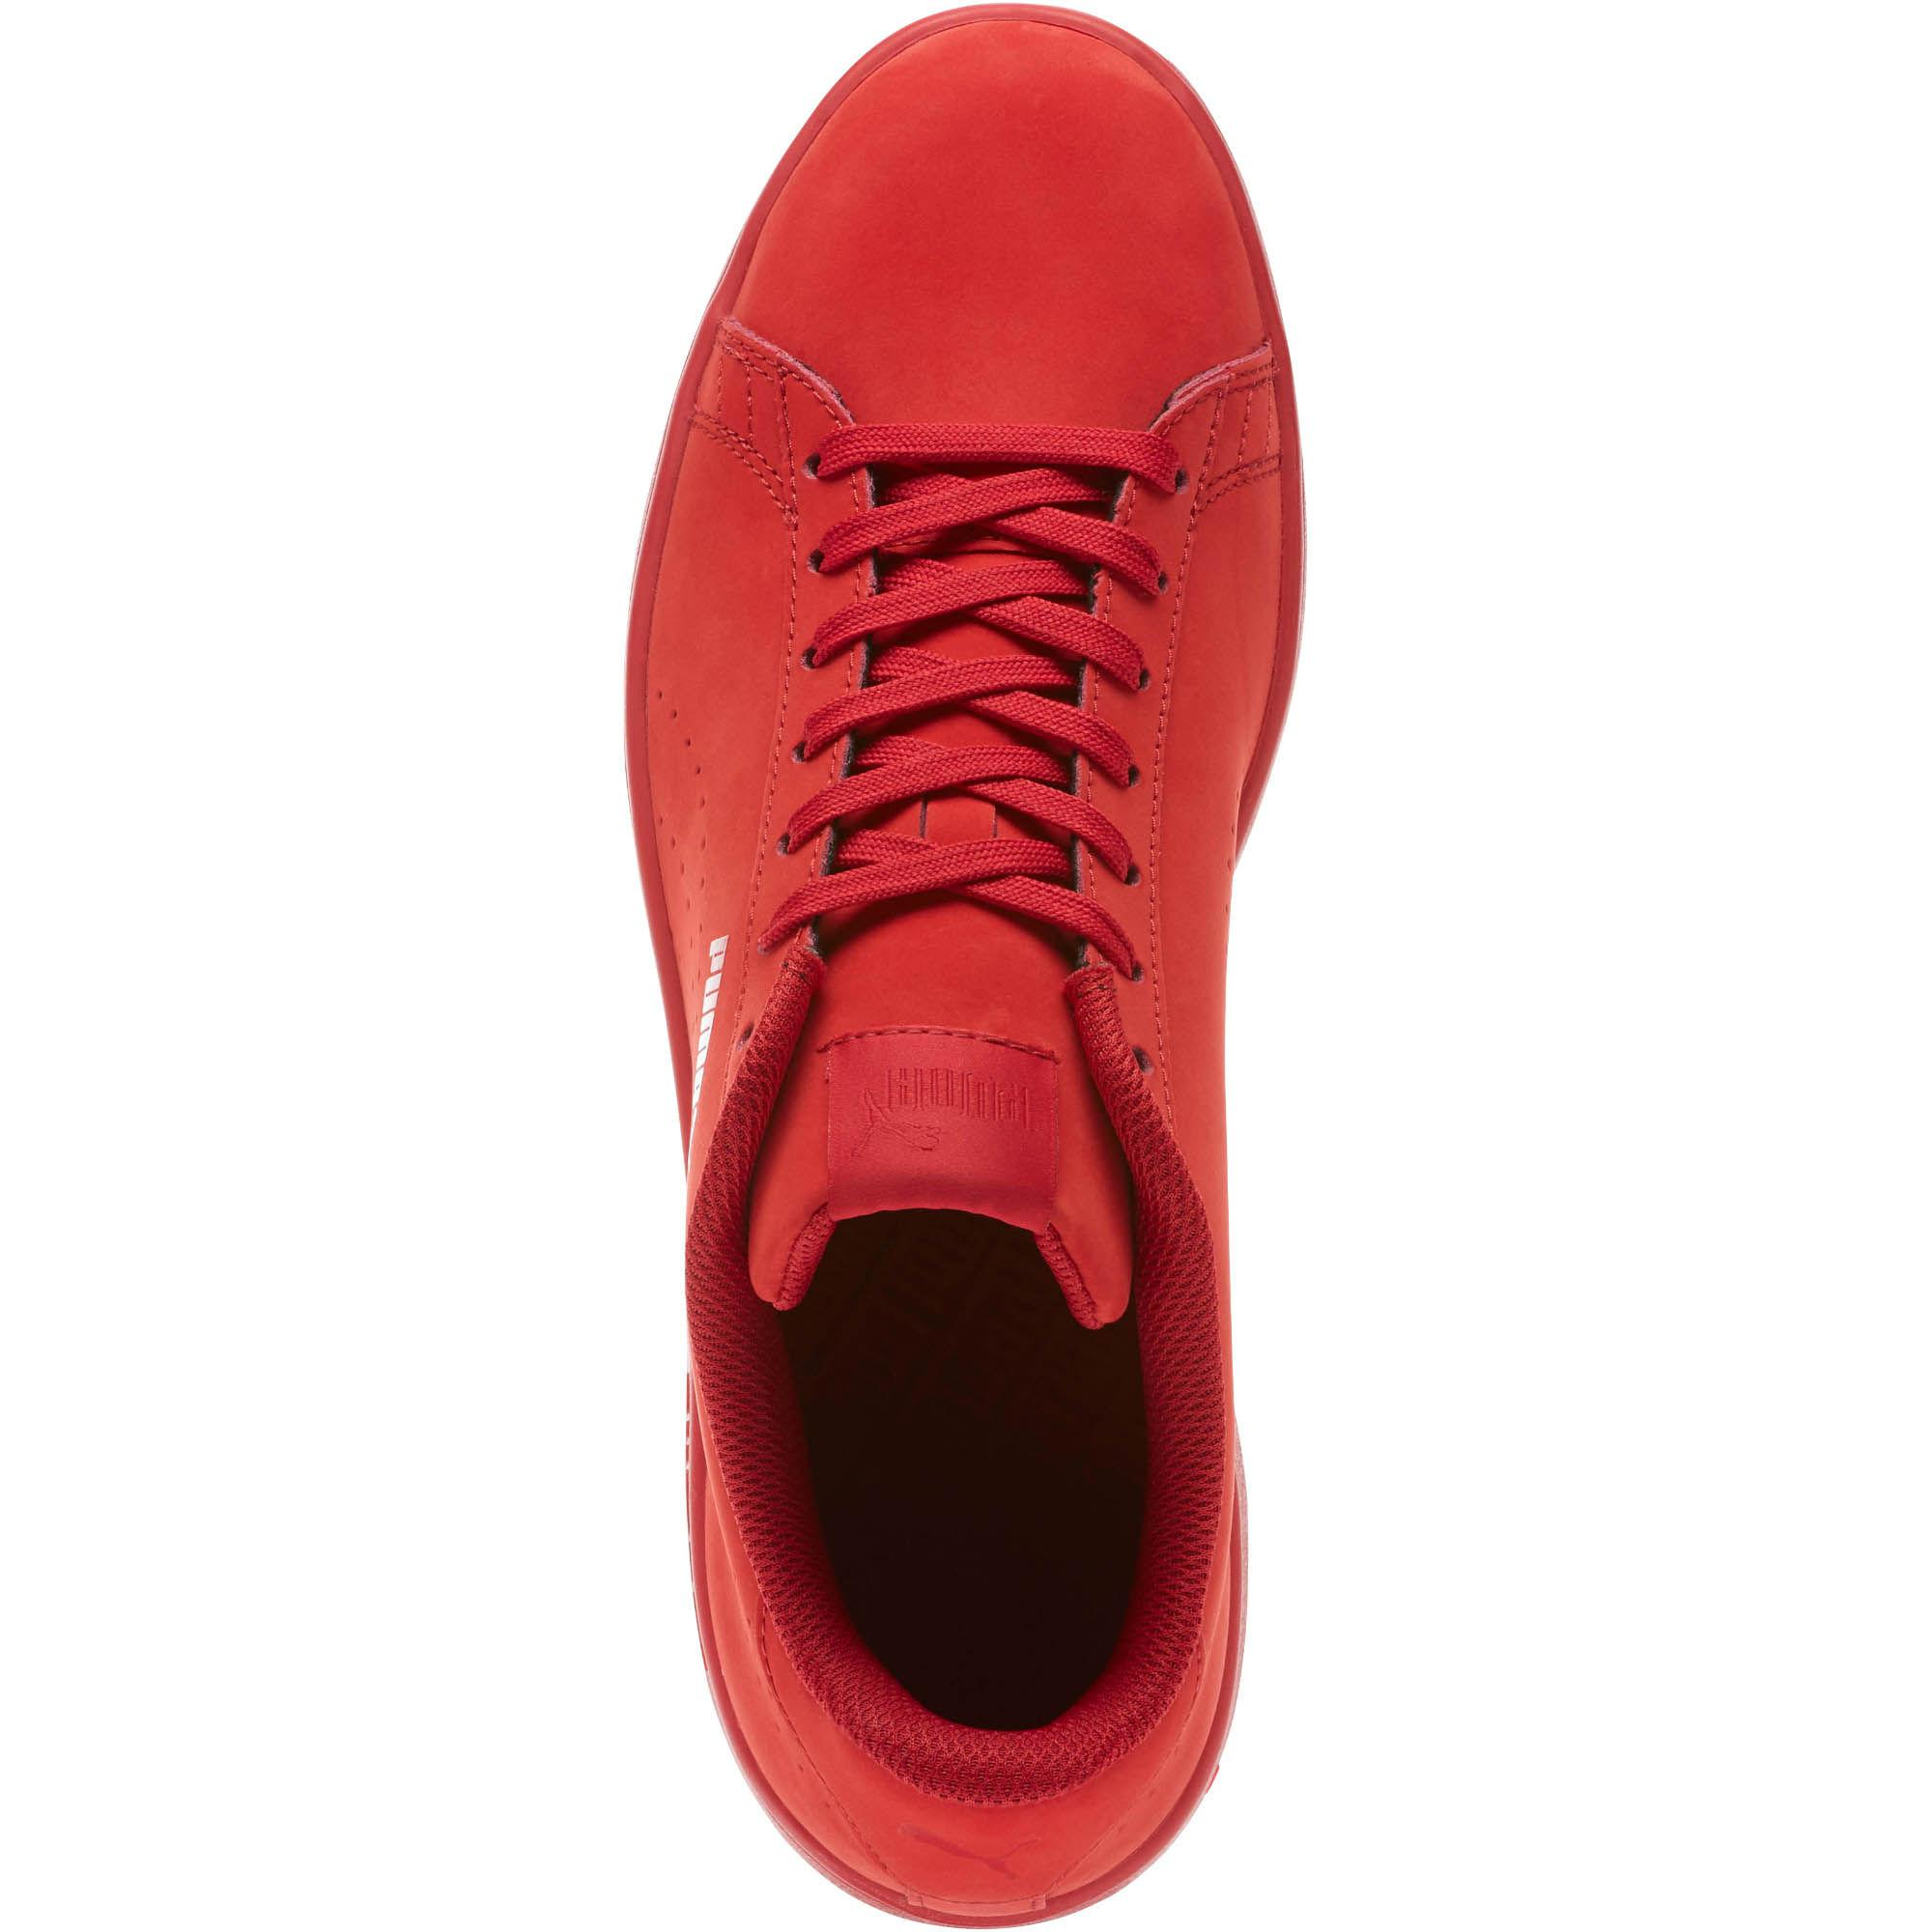 536f9c30b77 Lyst - PUMA Smash V2 Nubuck Men s Sneakers in Red for Men